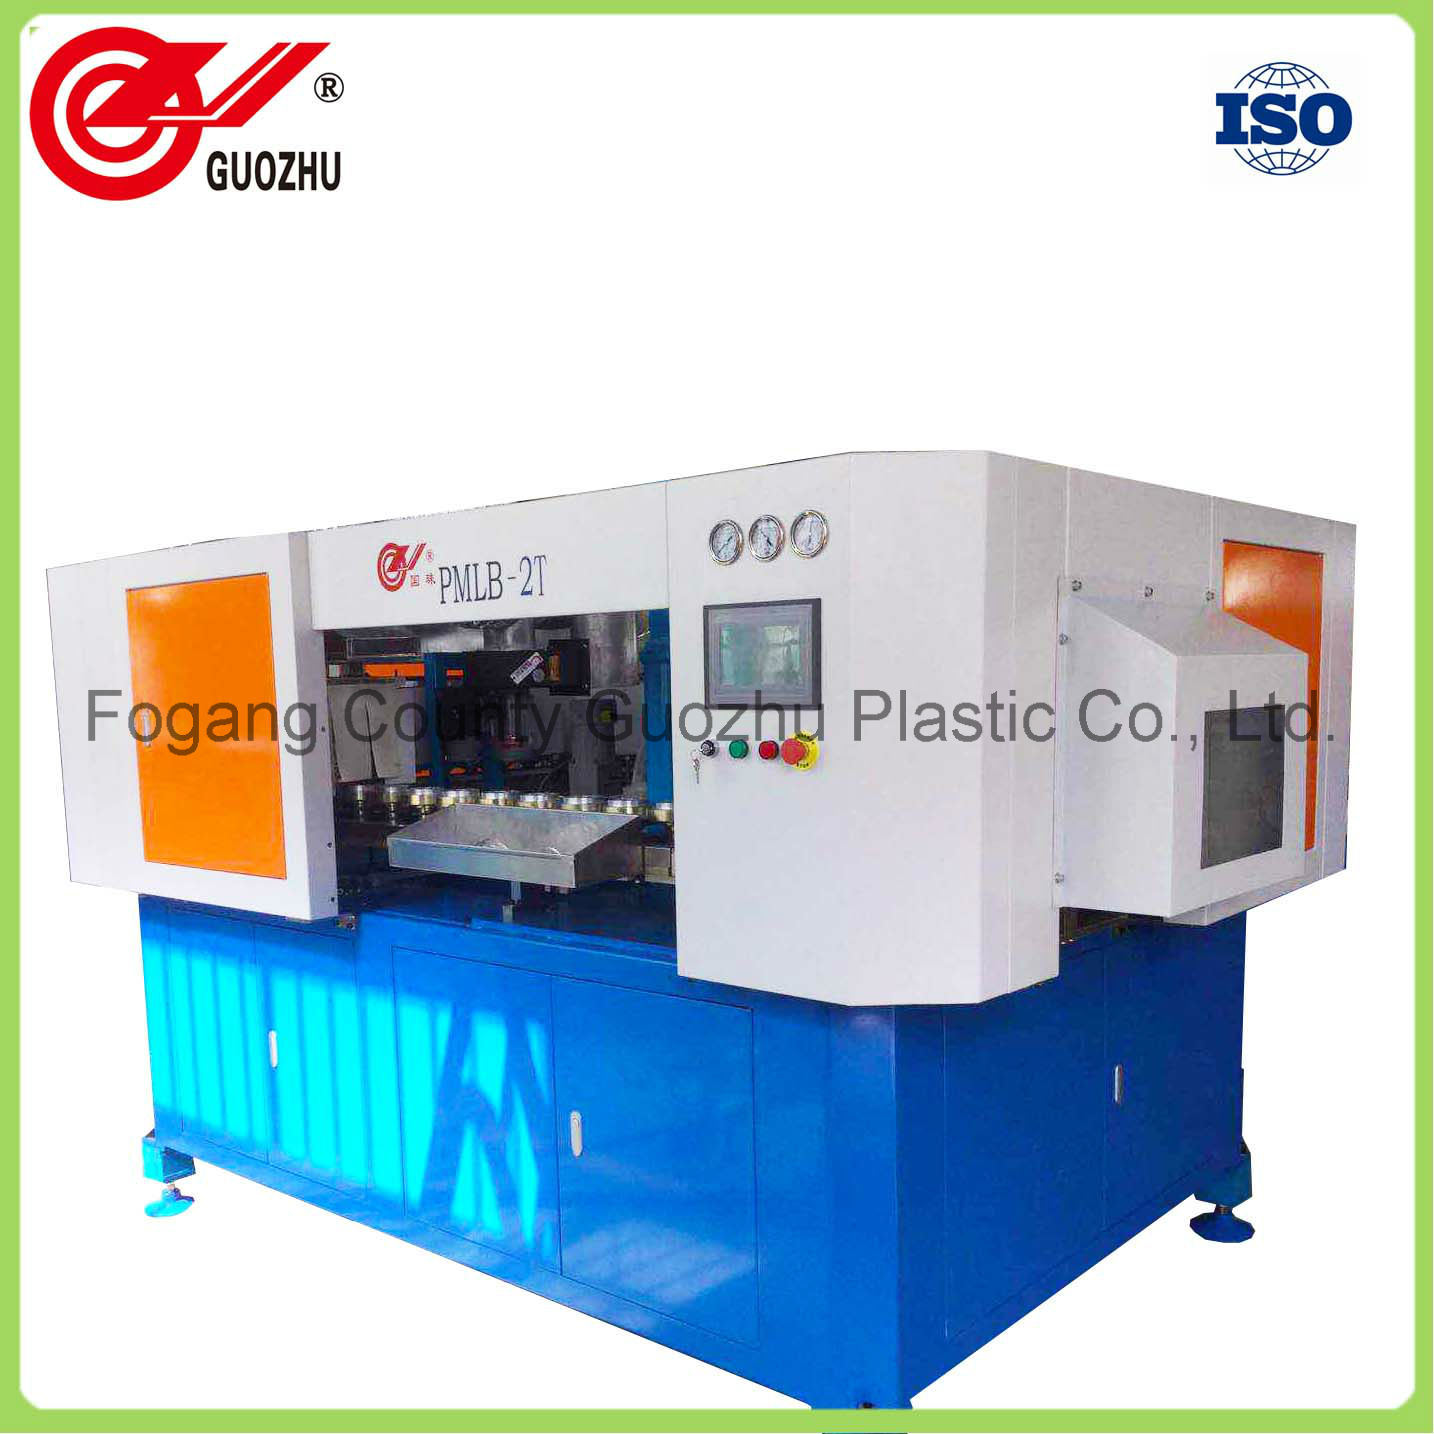 2 Cavity Linear Blowing Plastic Machinery for Jar